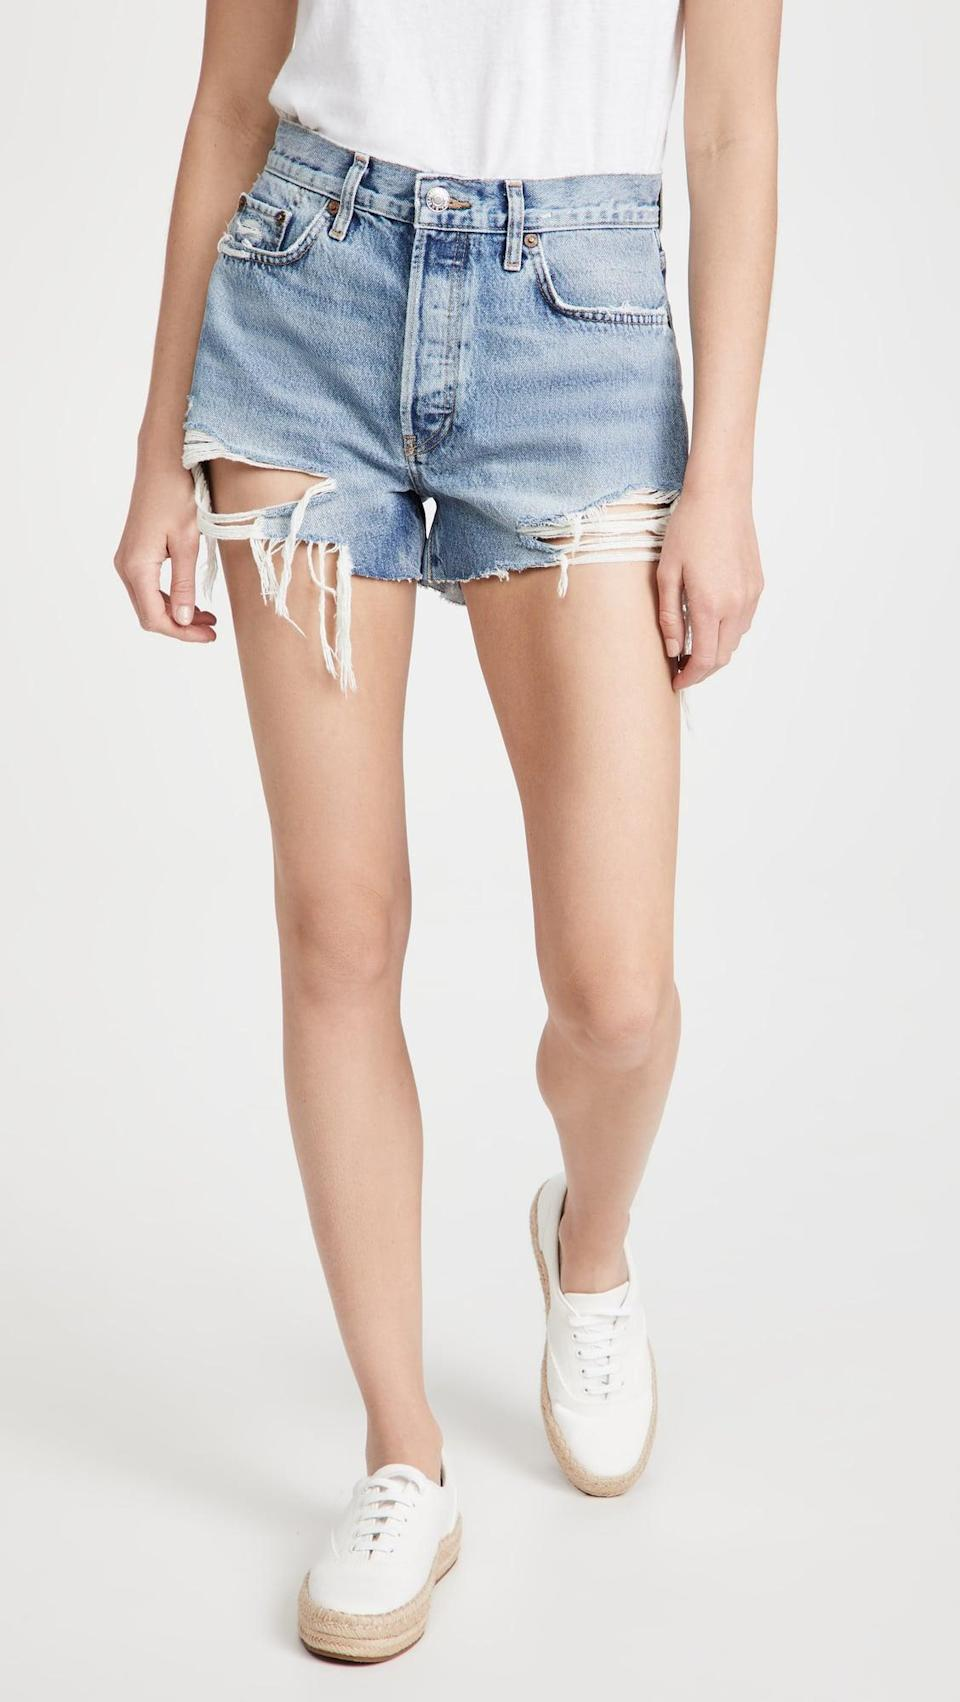 <p>If you love vintage shorts, then the <span>RE/DONE 70s High Rise Shorts</span> ($210) is no doubt your match.</p>